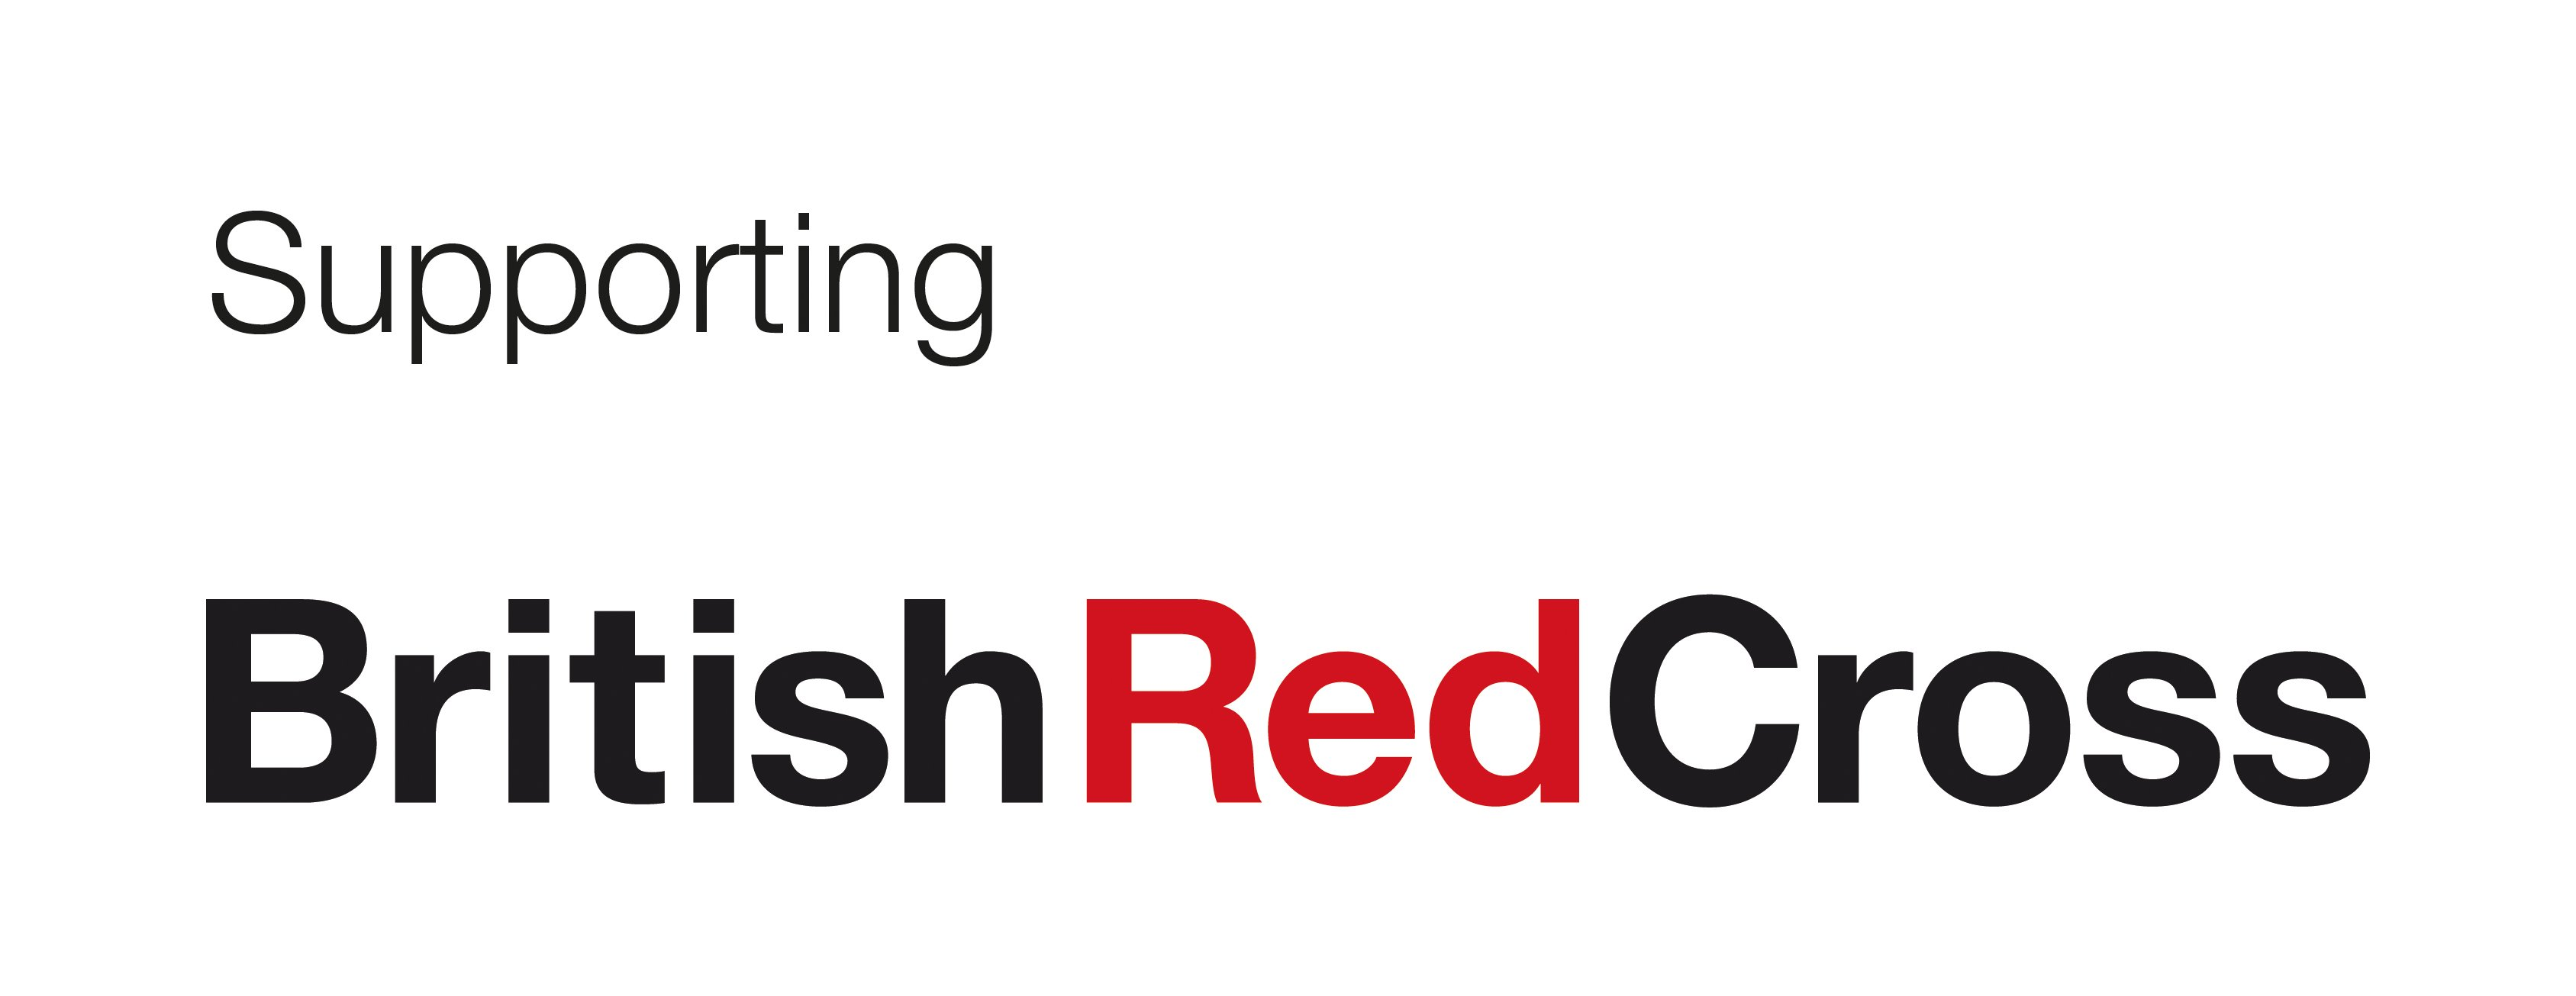 Supporting British Red Cross logo